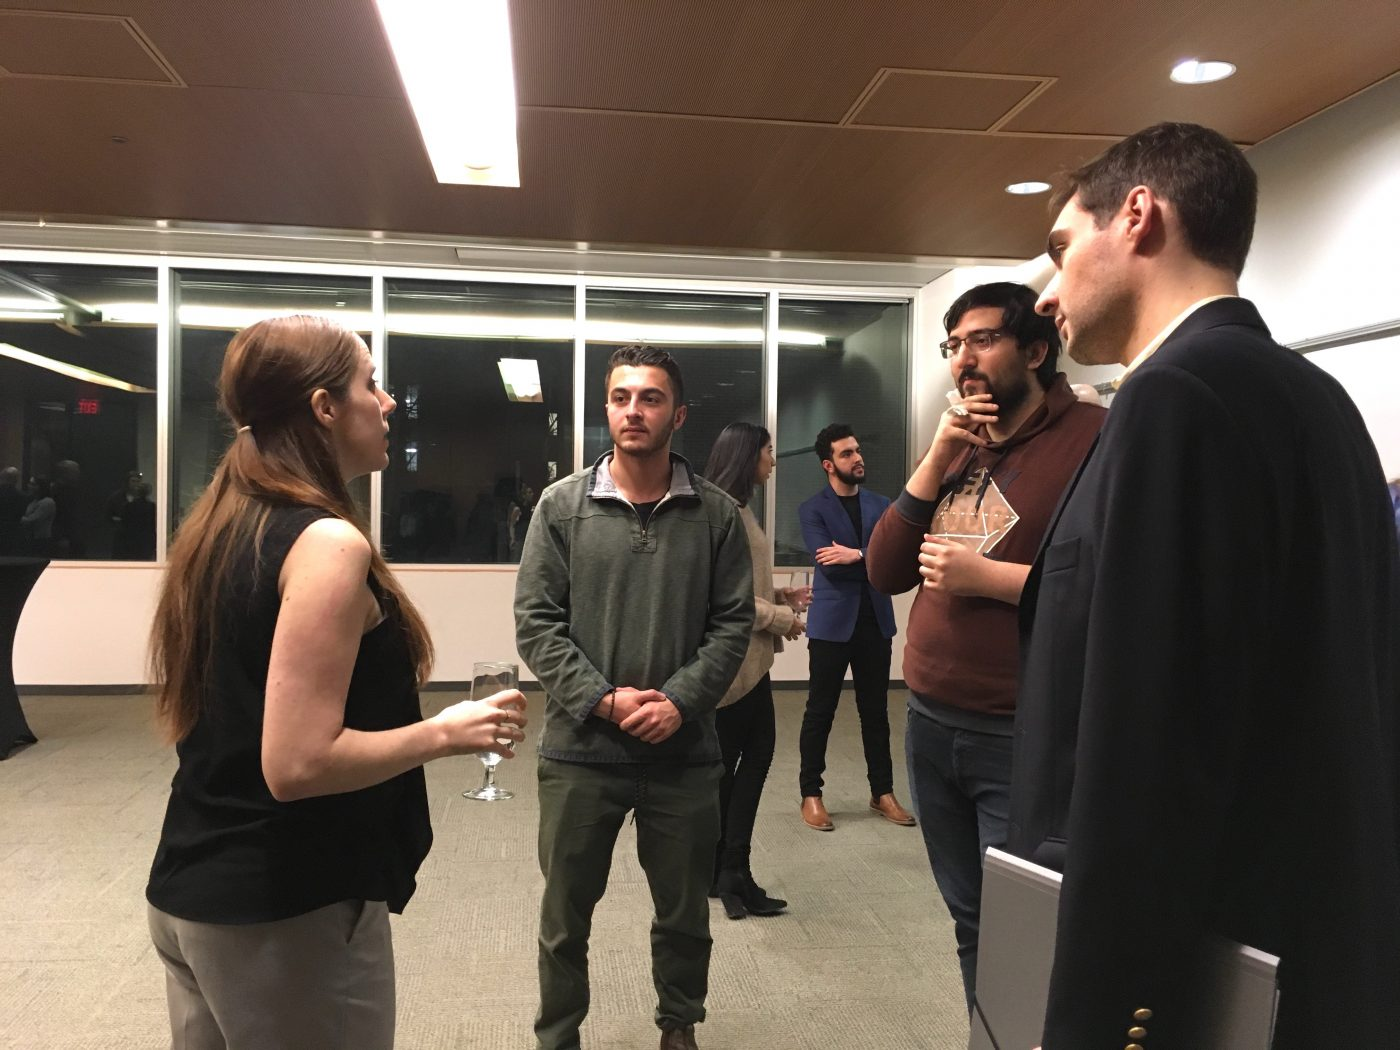 An alumna talks to 3 law students at an event.